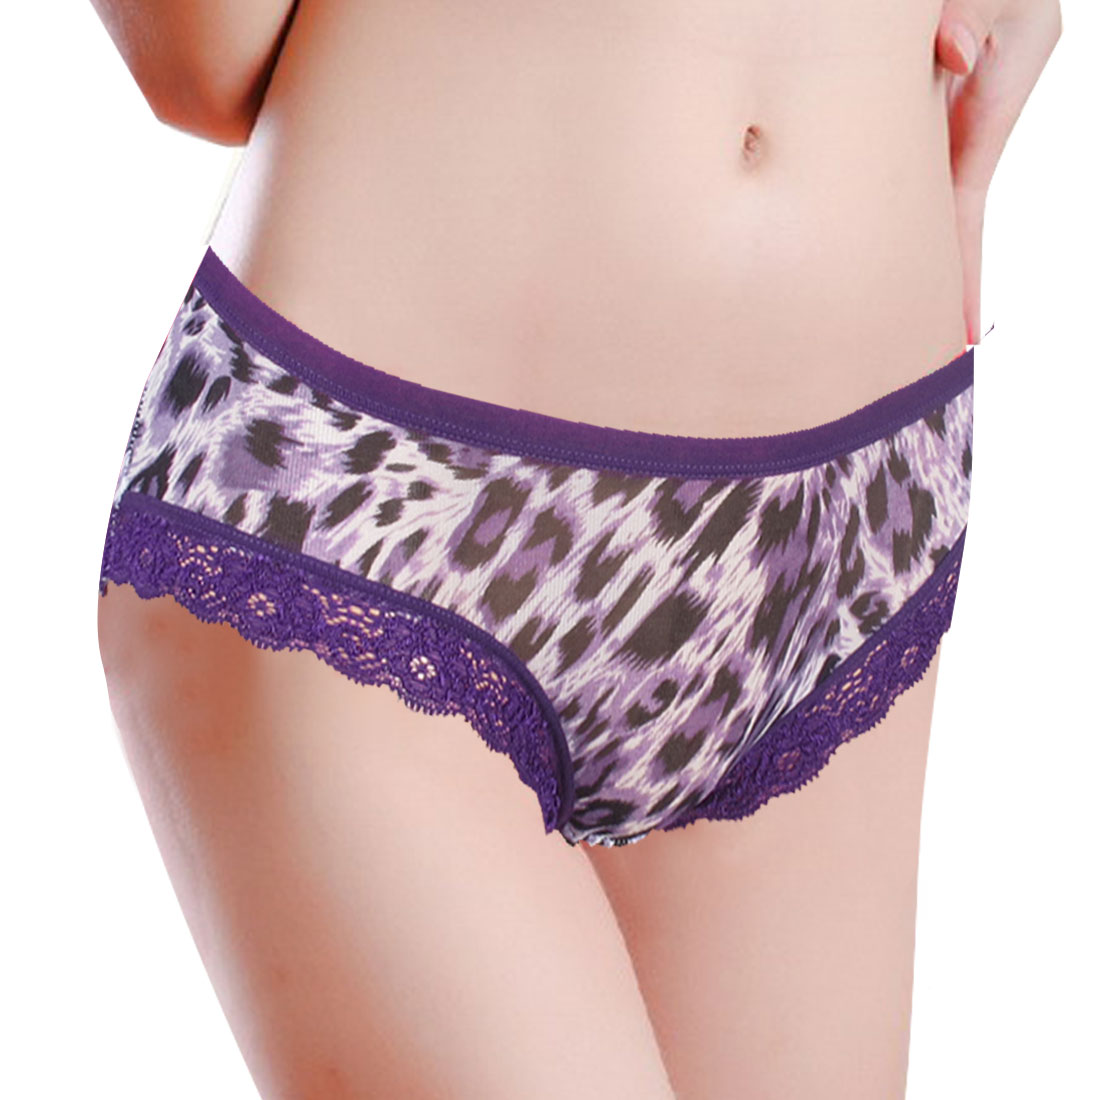 Elastic Waist Black Purple Leopard Print Briefs Panties XS for Ladies